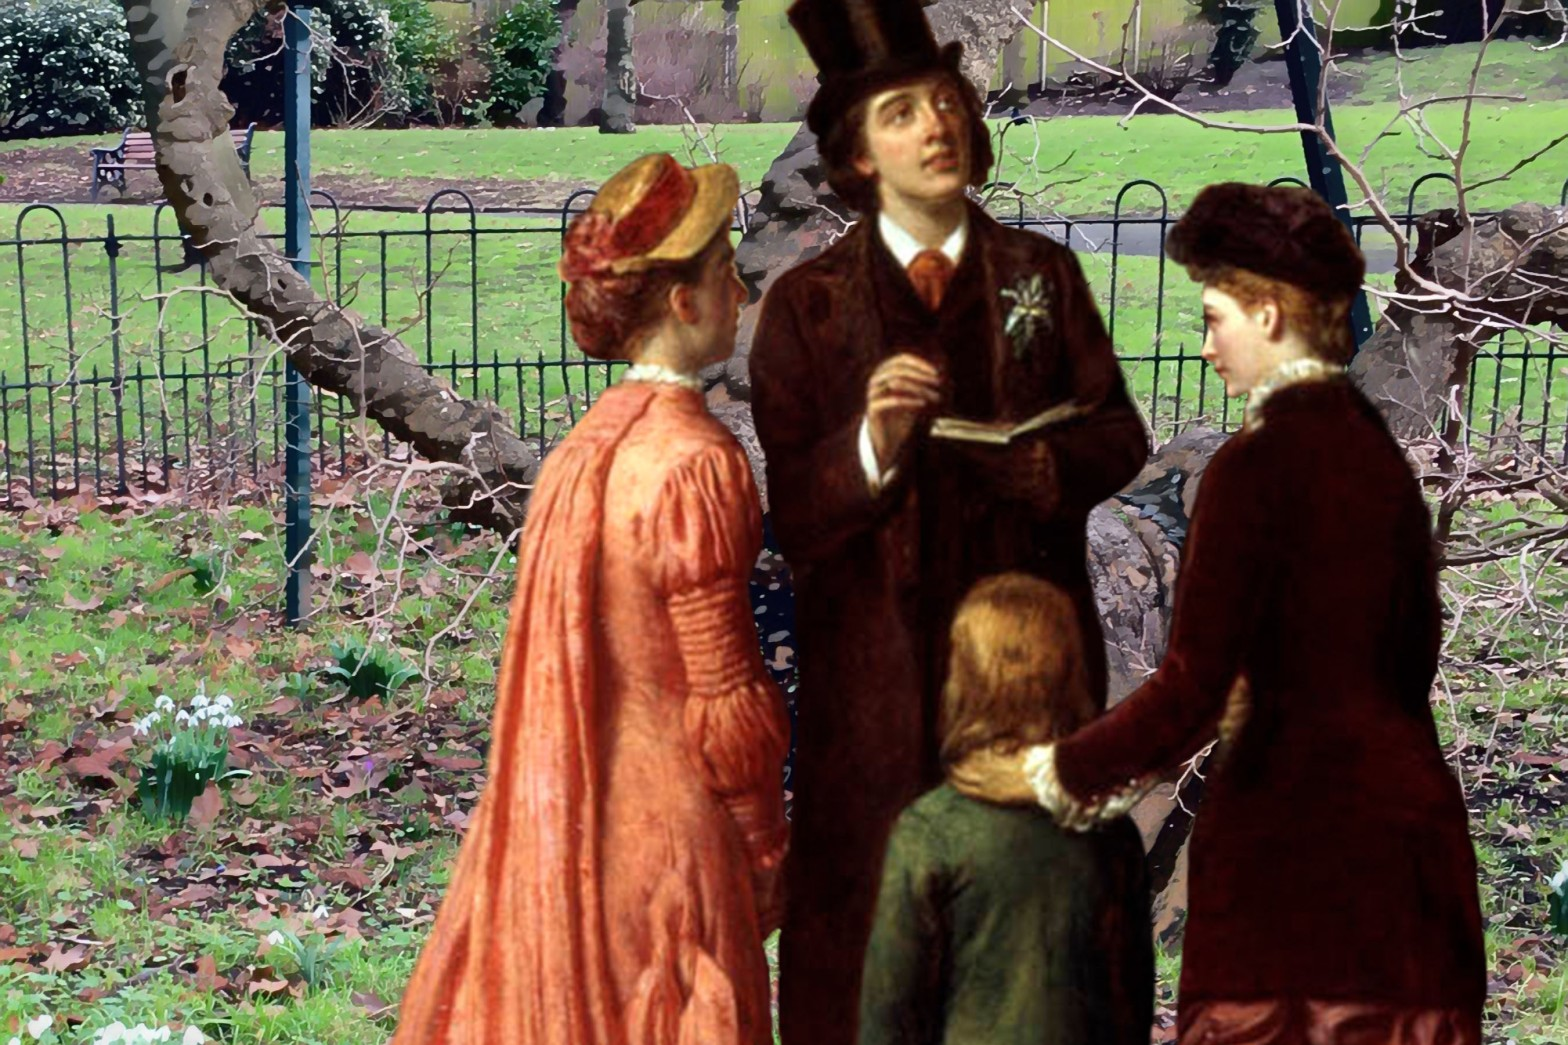 "Oscar Wilde and three other figures from William Powell Frith's ""A Private View at the Royal Academy, 1881"" (1883) visit Sayes Court Park, Deptford"